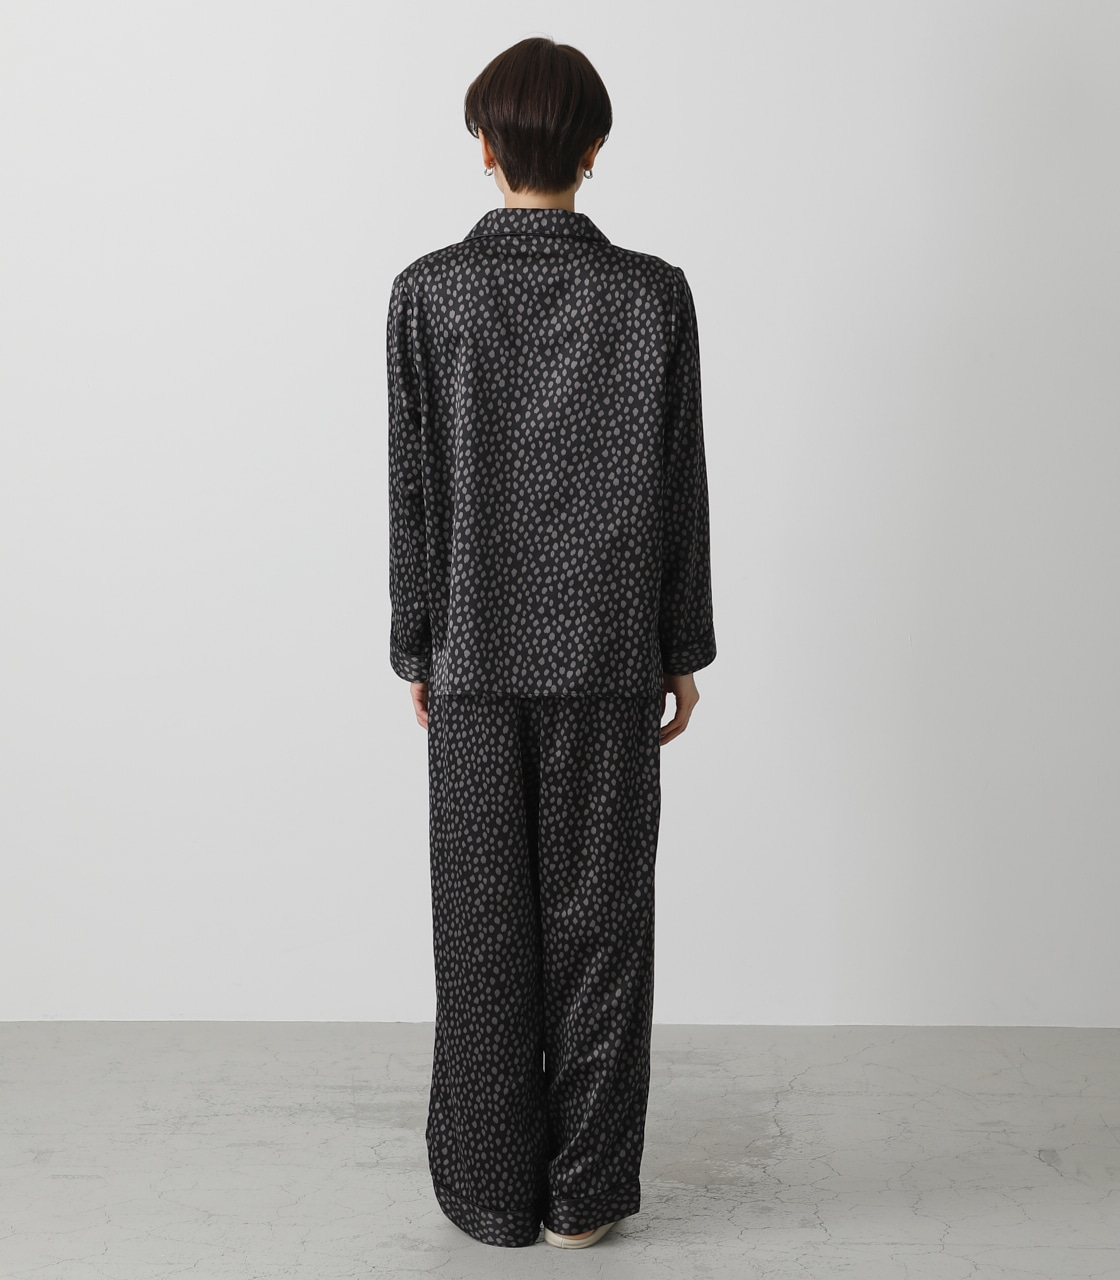 T/H SATIN L/S PAJAMAS/T/Hサテンロングスリーブパジャマ 詳細画像 柄BLK 7